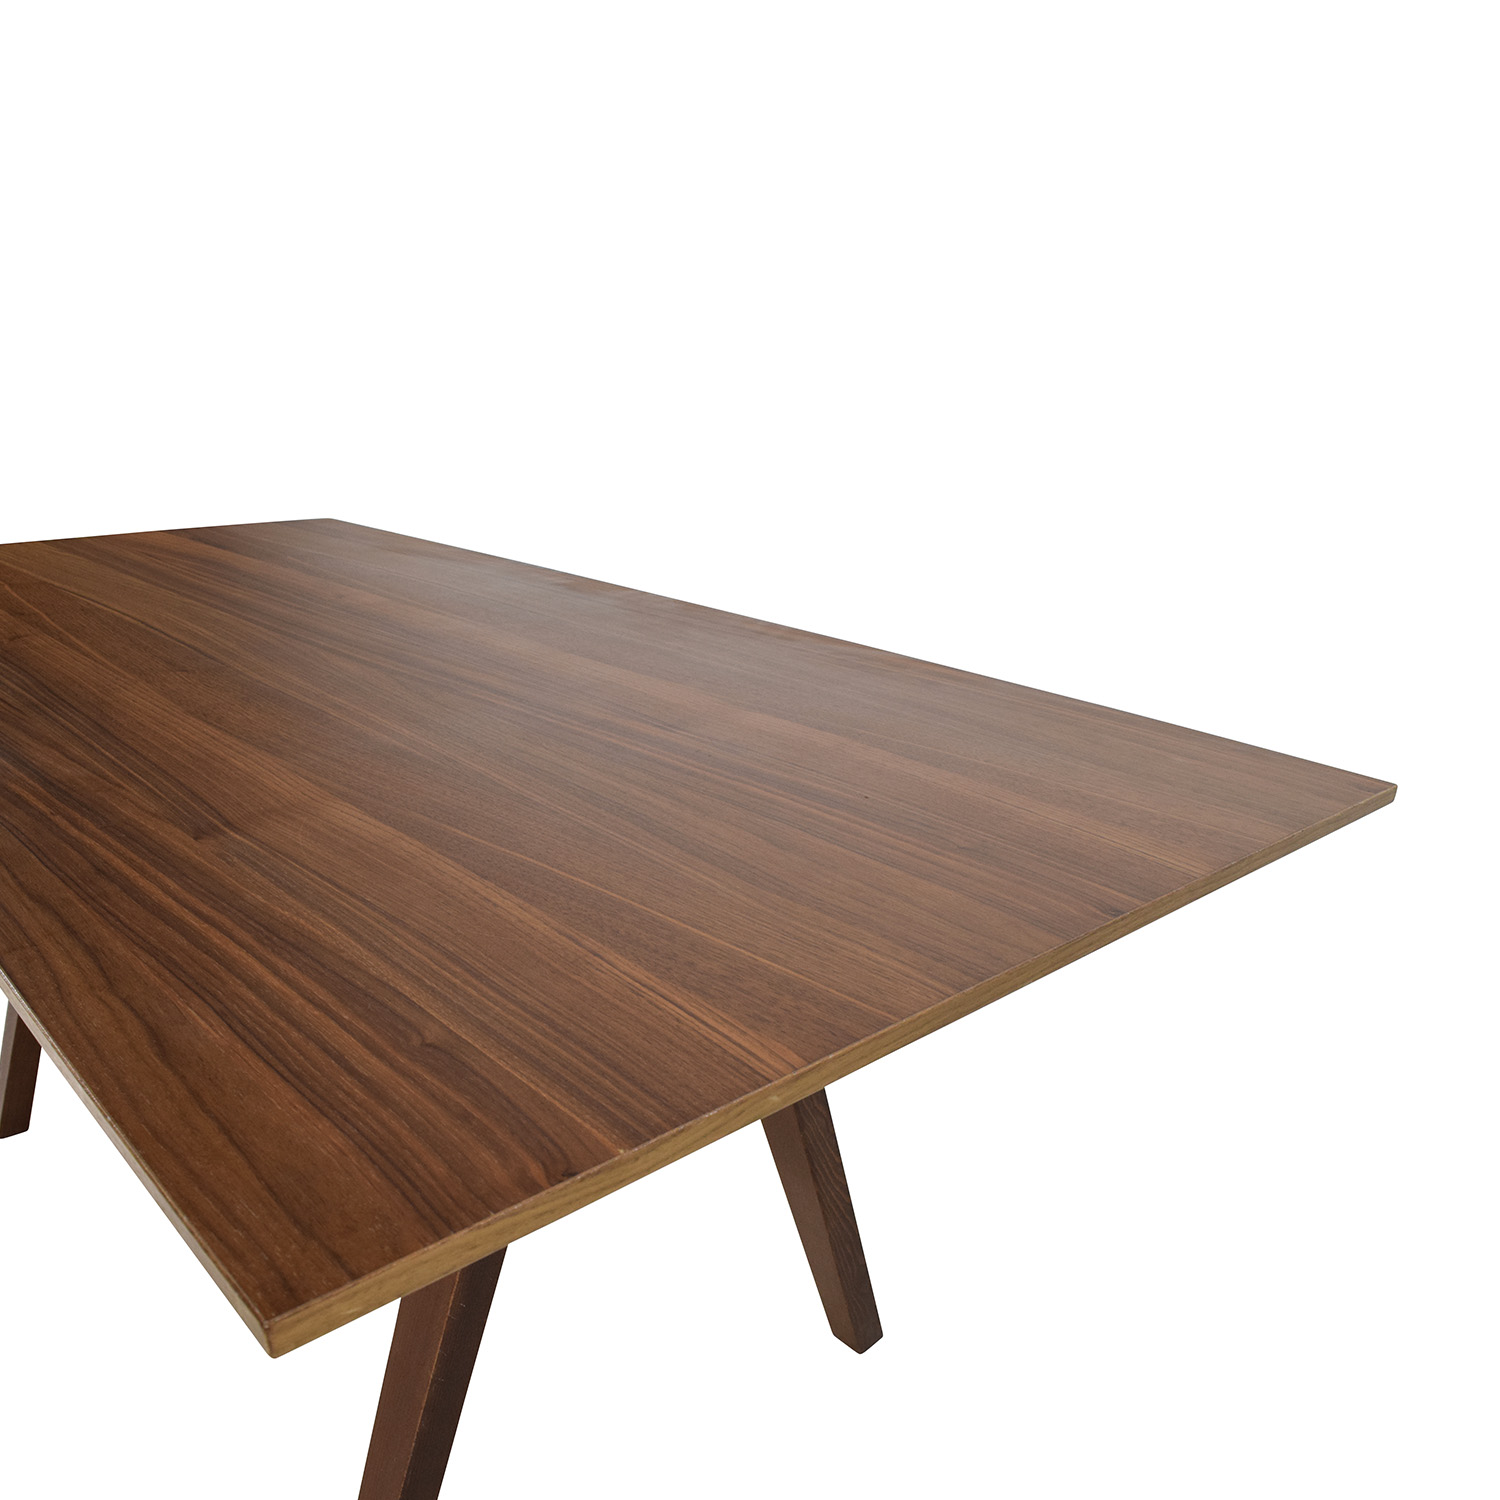 Ikea Coffee Table Second Hand: IKEA IKEA Stockholm Dining Table / Tables